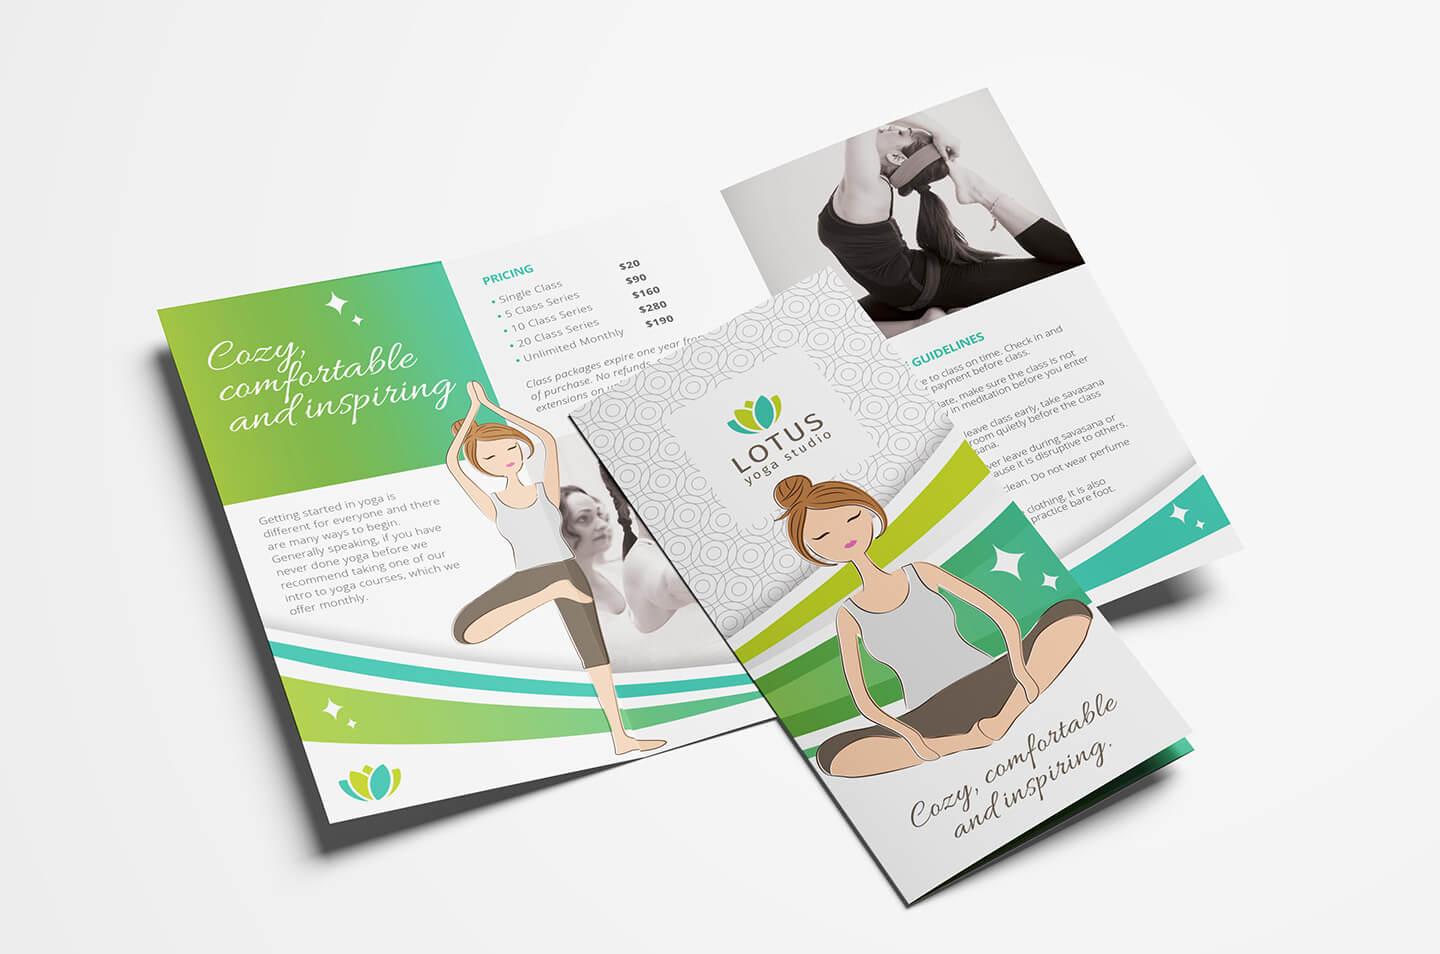 Yoga Studio Tri Fold Brochure Template In Psd, Ai & Vector Throughout Tri Fold Brochure Template Illustrator